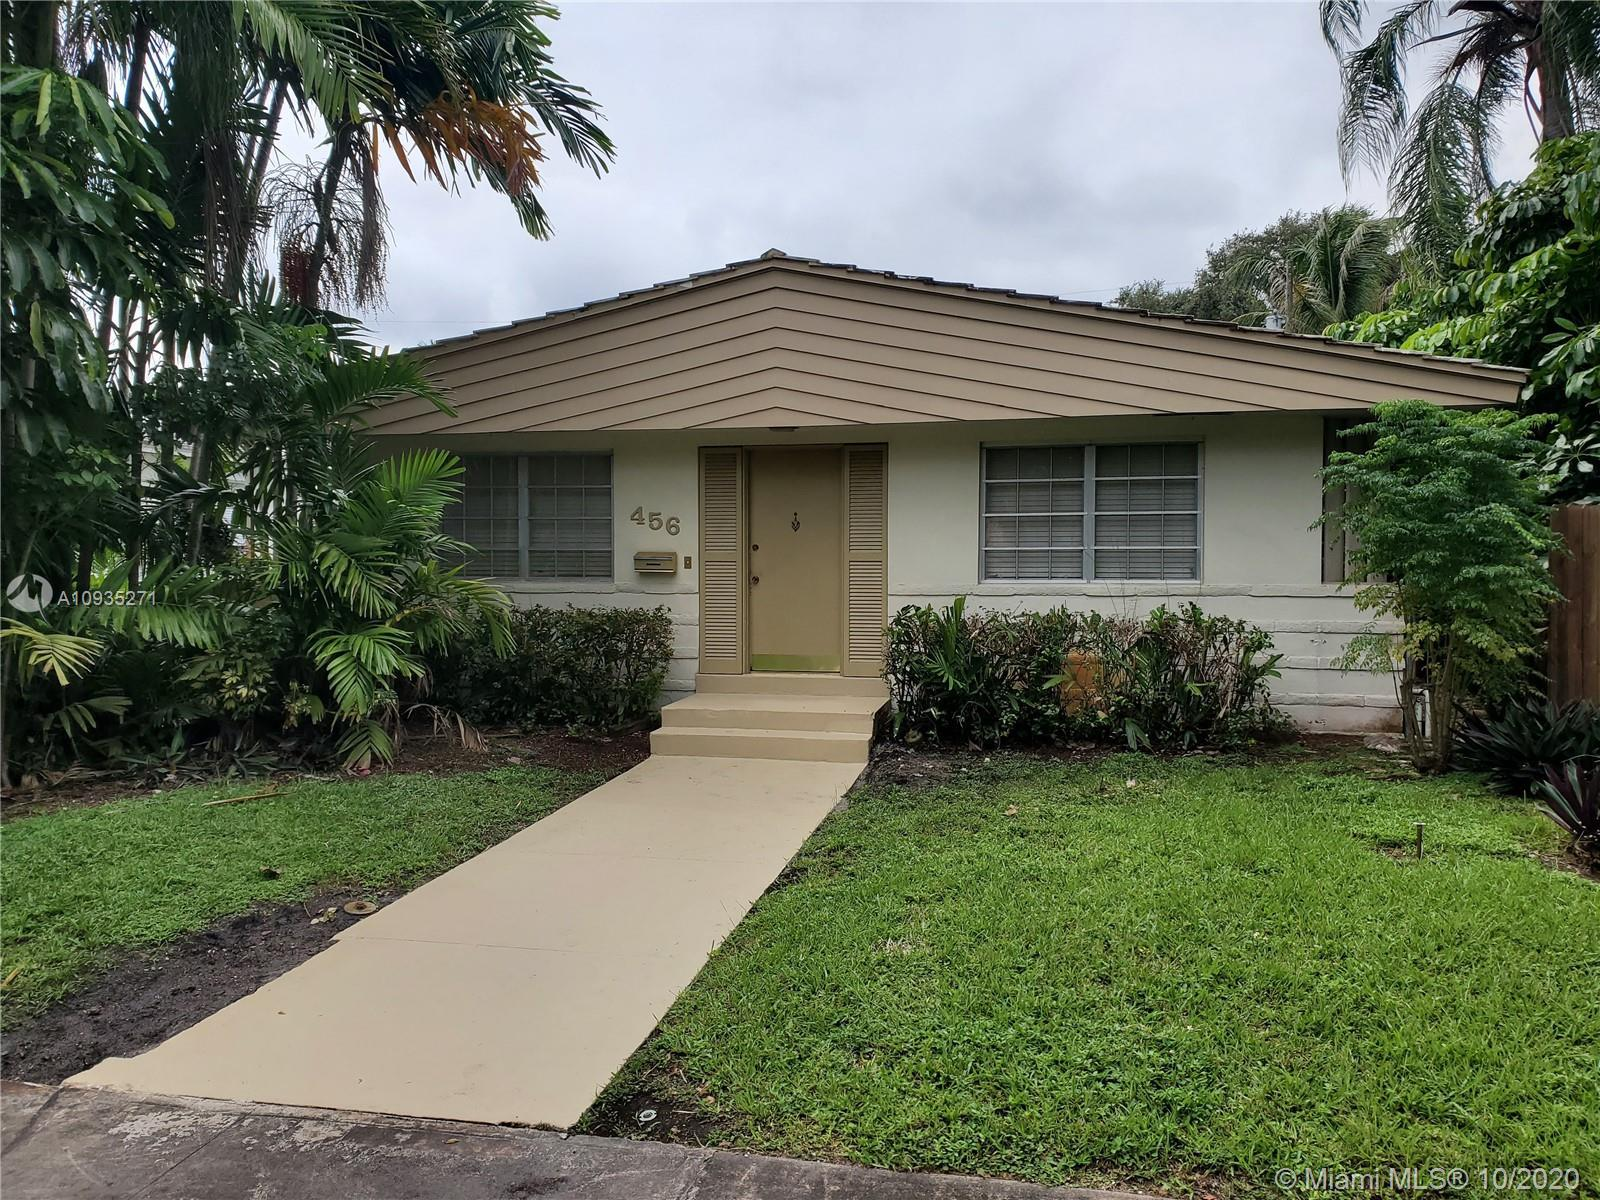 JUST REDUCED! LOCATION! OPPORTUNITY! SF Home in Heart of Miami Shores! In a quiet area with lots of